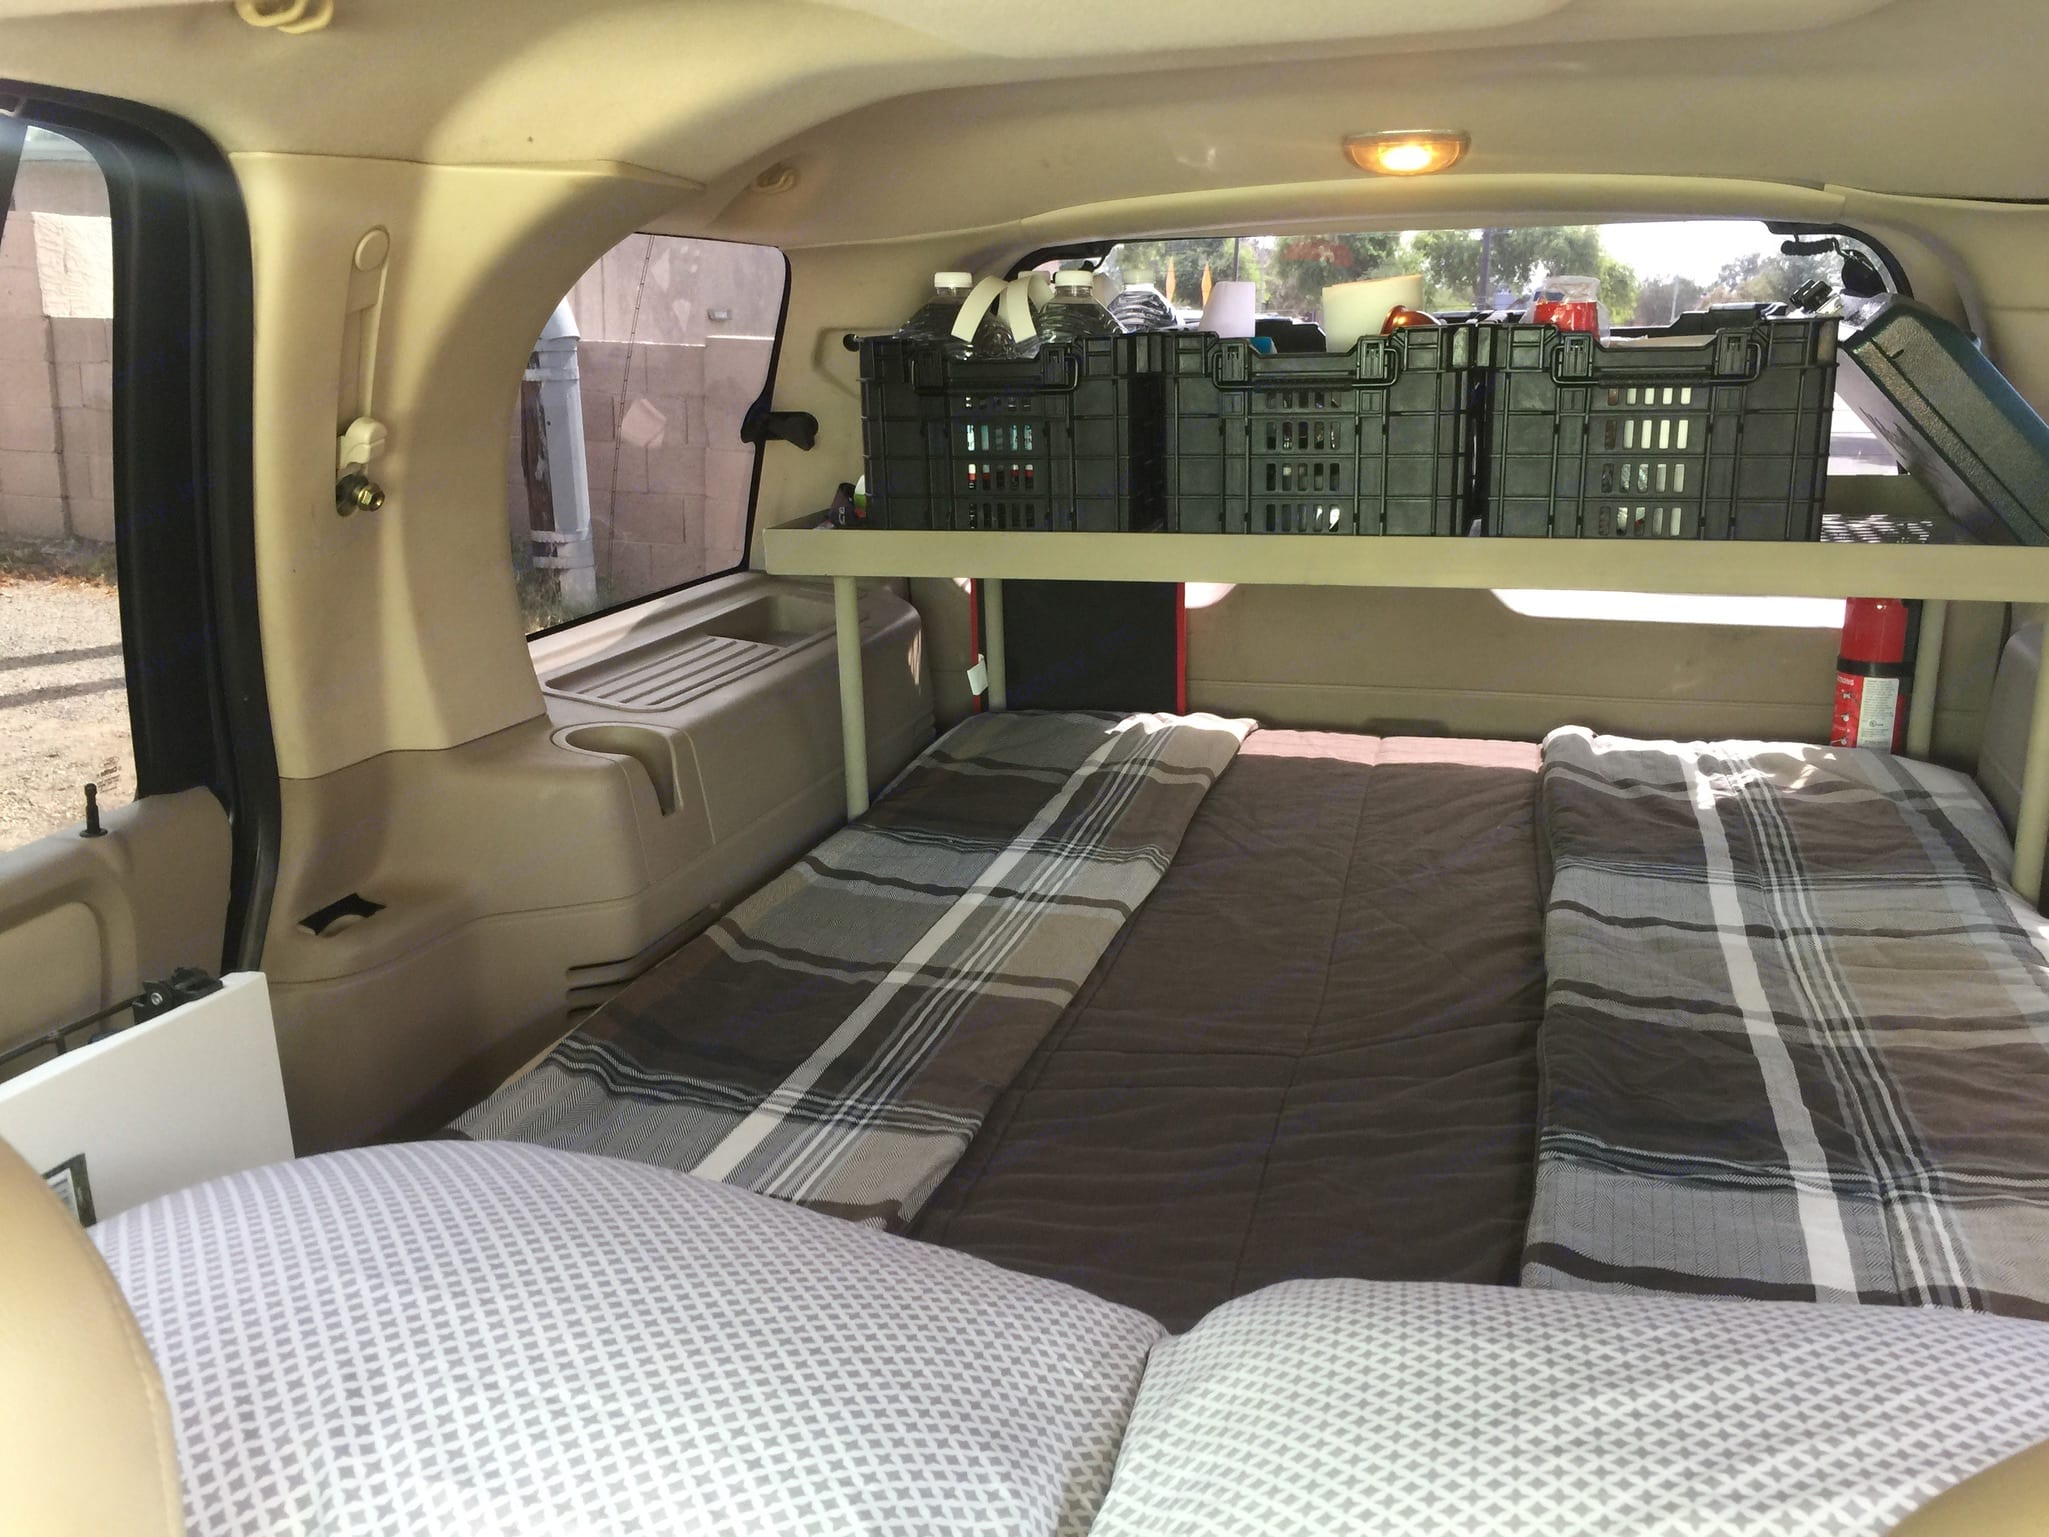 """Comfy memory-foam mattress with soft sheets and blankets...WAY better than sleeping bags, and if it's too cold or wet to be outside...roll up the windows and sleep soundly indoors. The bed measures 50"""" wide x 80"""" long (Queen length, double width). Ford Campervan Expedition Adventure 4x4 Camper Van Conversion 2005"""